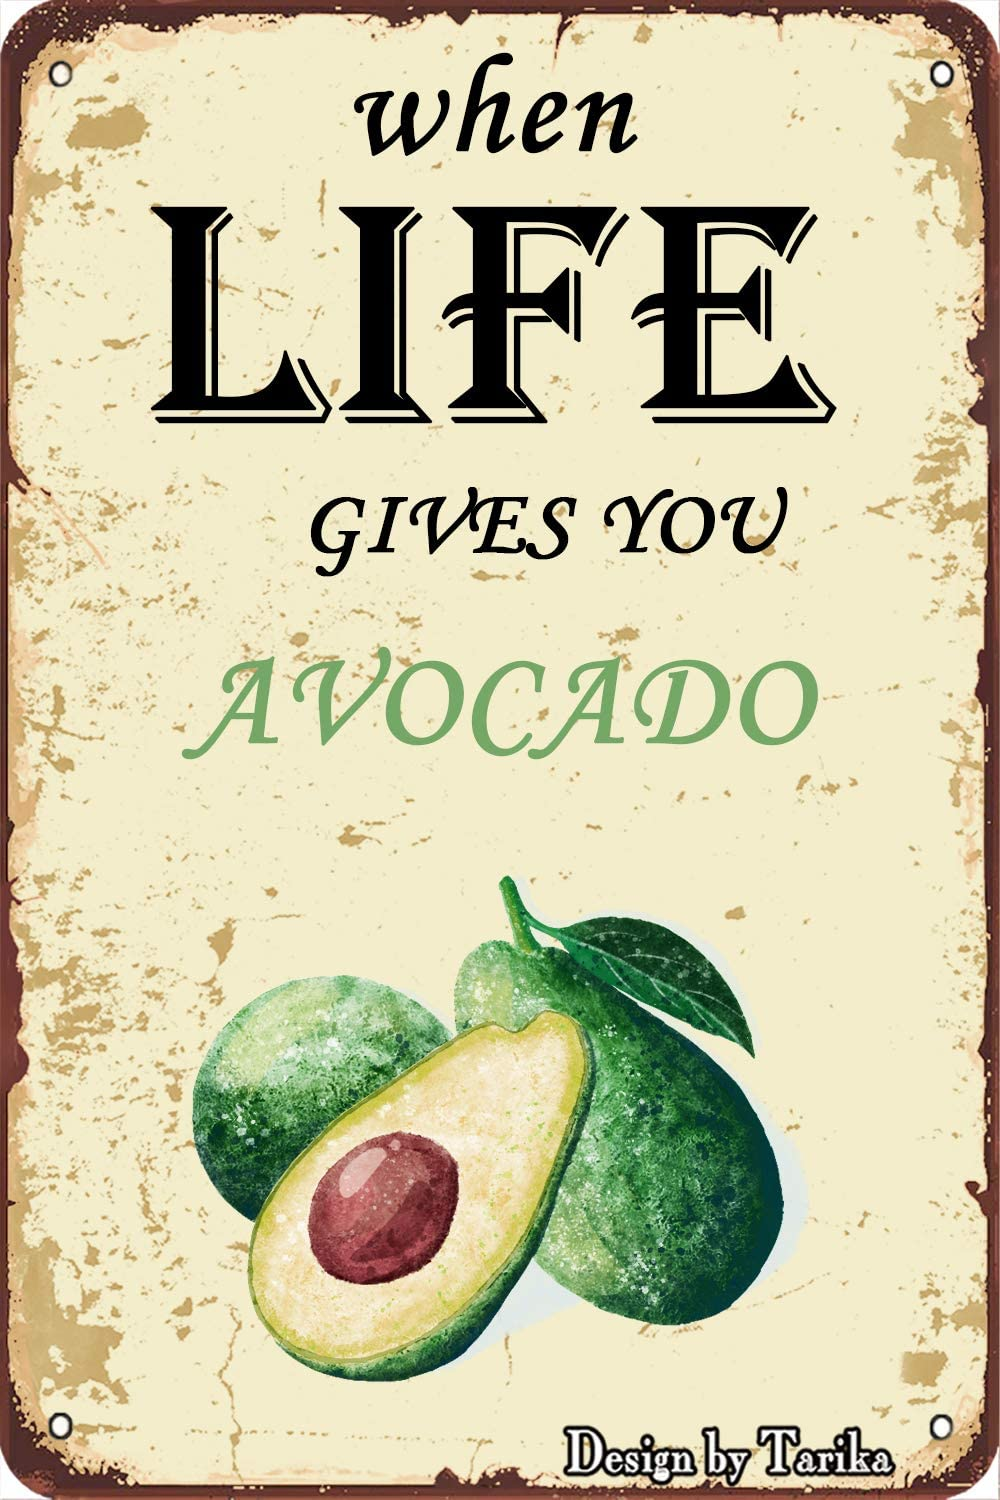 When Life Gives You Avocado 8X12 Inch Retro Look Iron Decoration Painting Sign for Home Kitchen Bathroom Farm Wall Decor